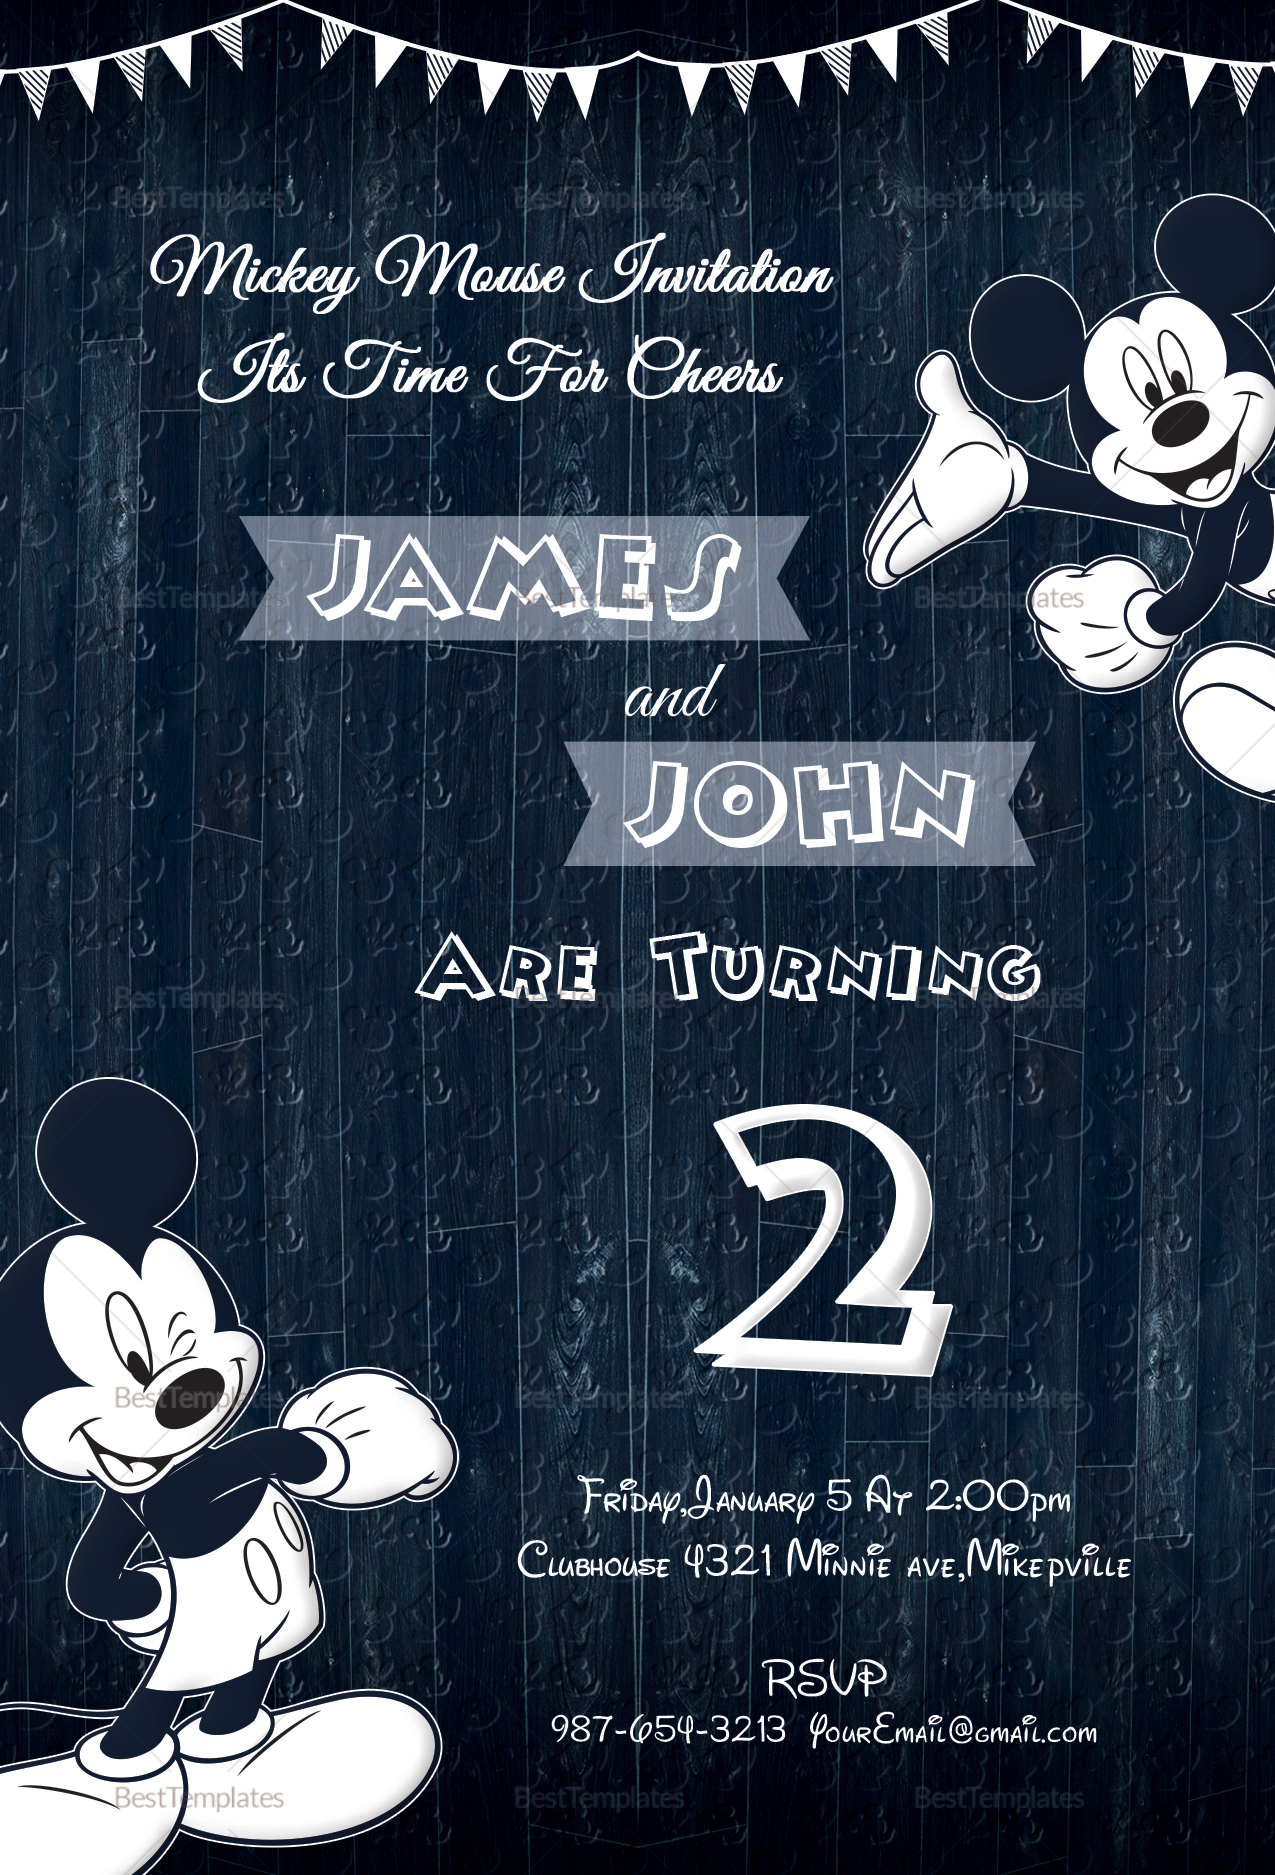 Wood Work Mickey Mouse Invitation Design Template